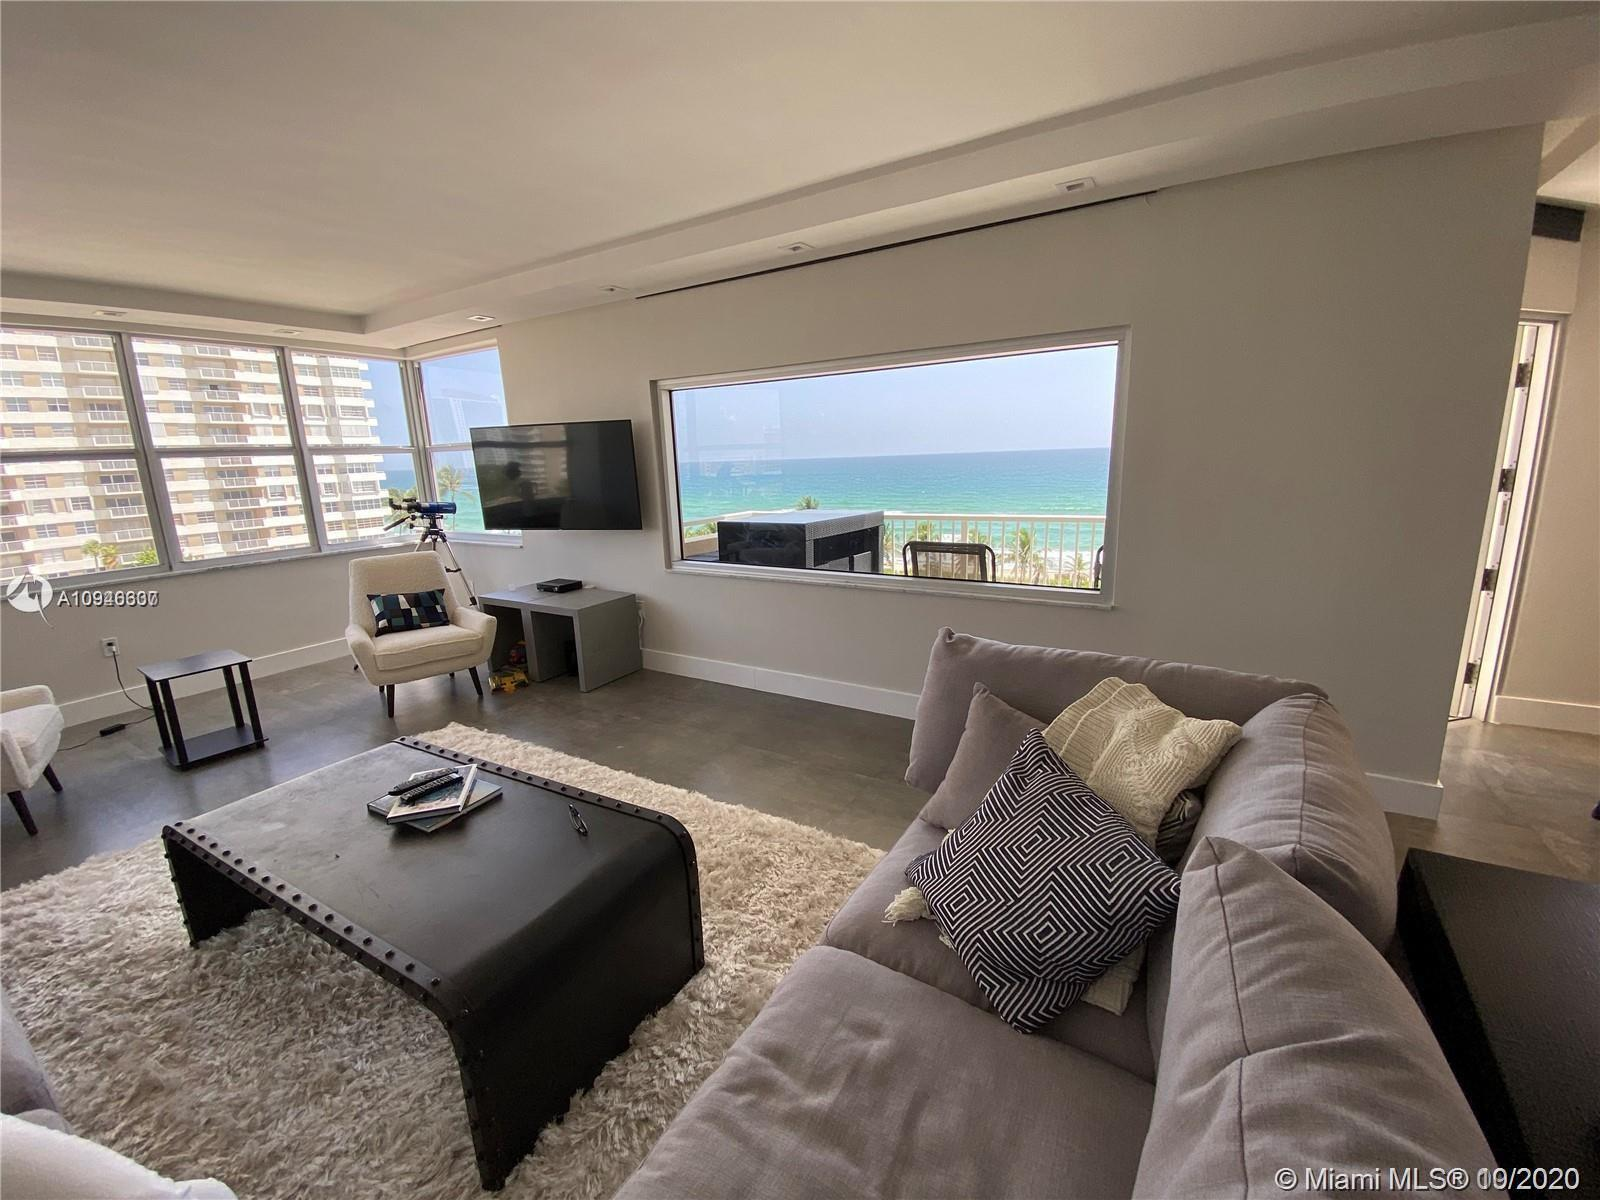 Imagine waking up in this corner apartment watching the waves crest the beach. Spectacularly renovat